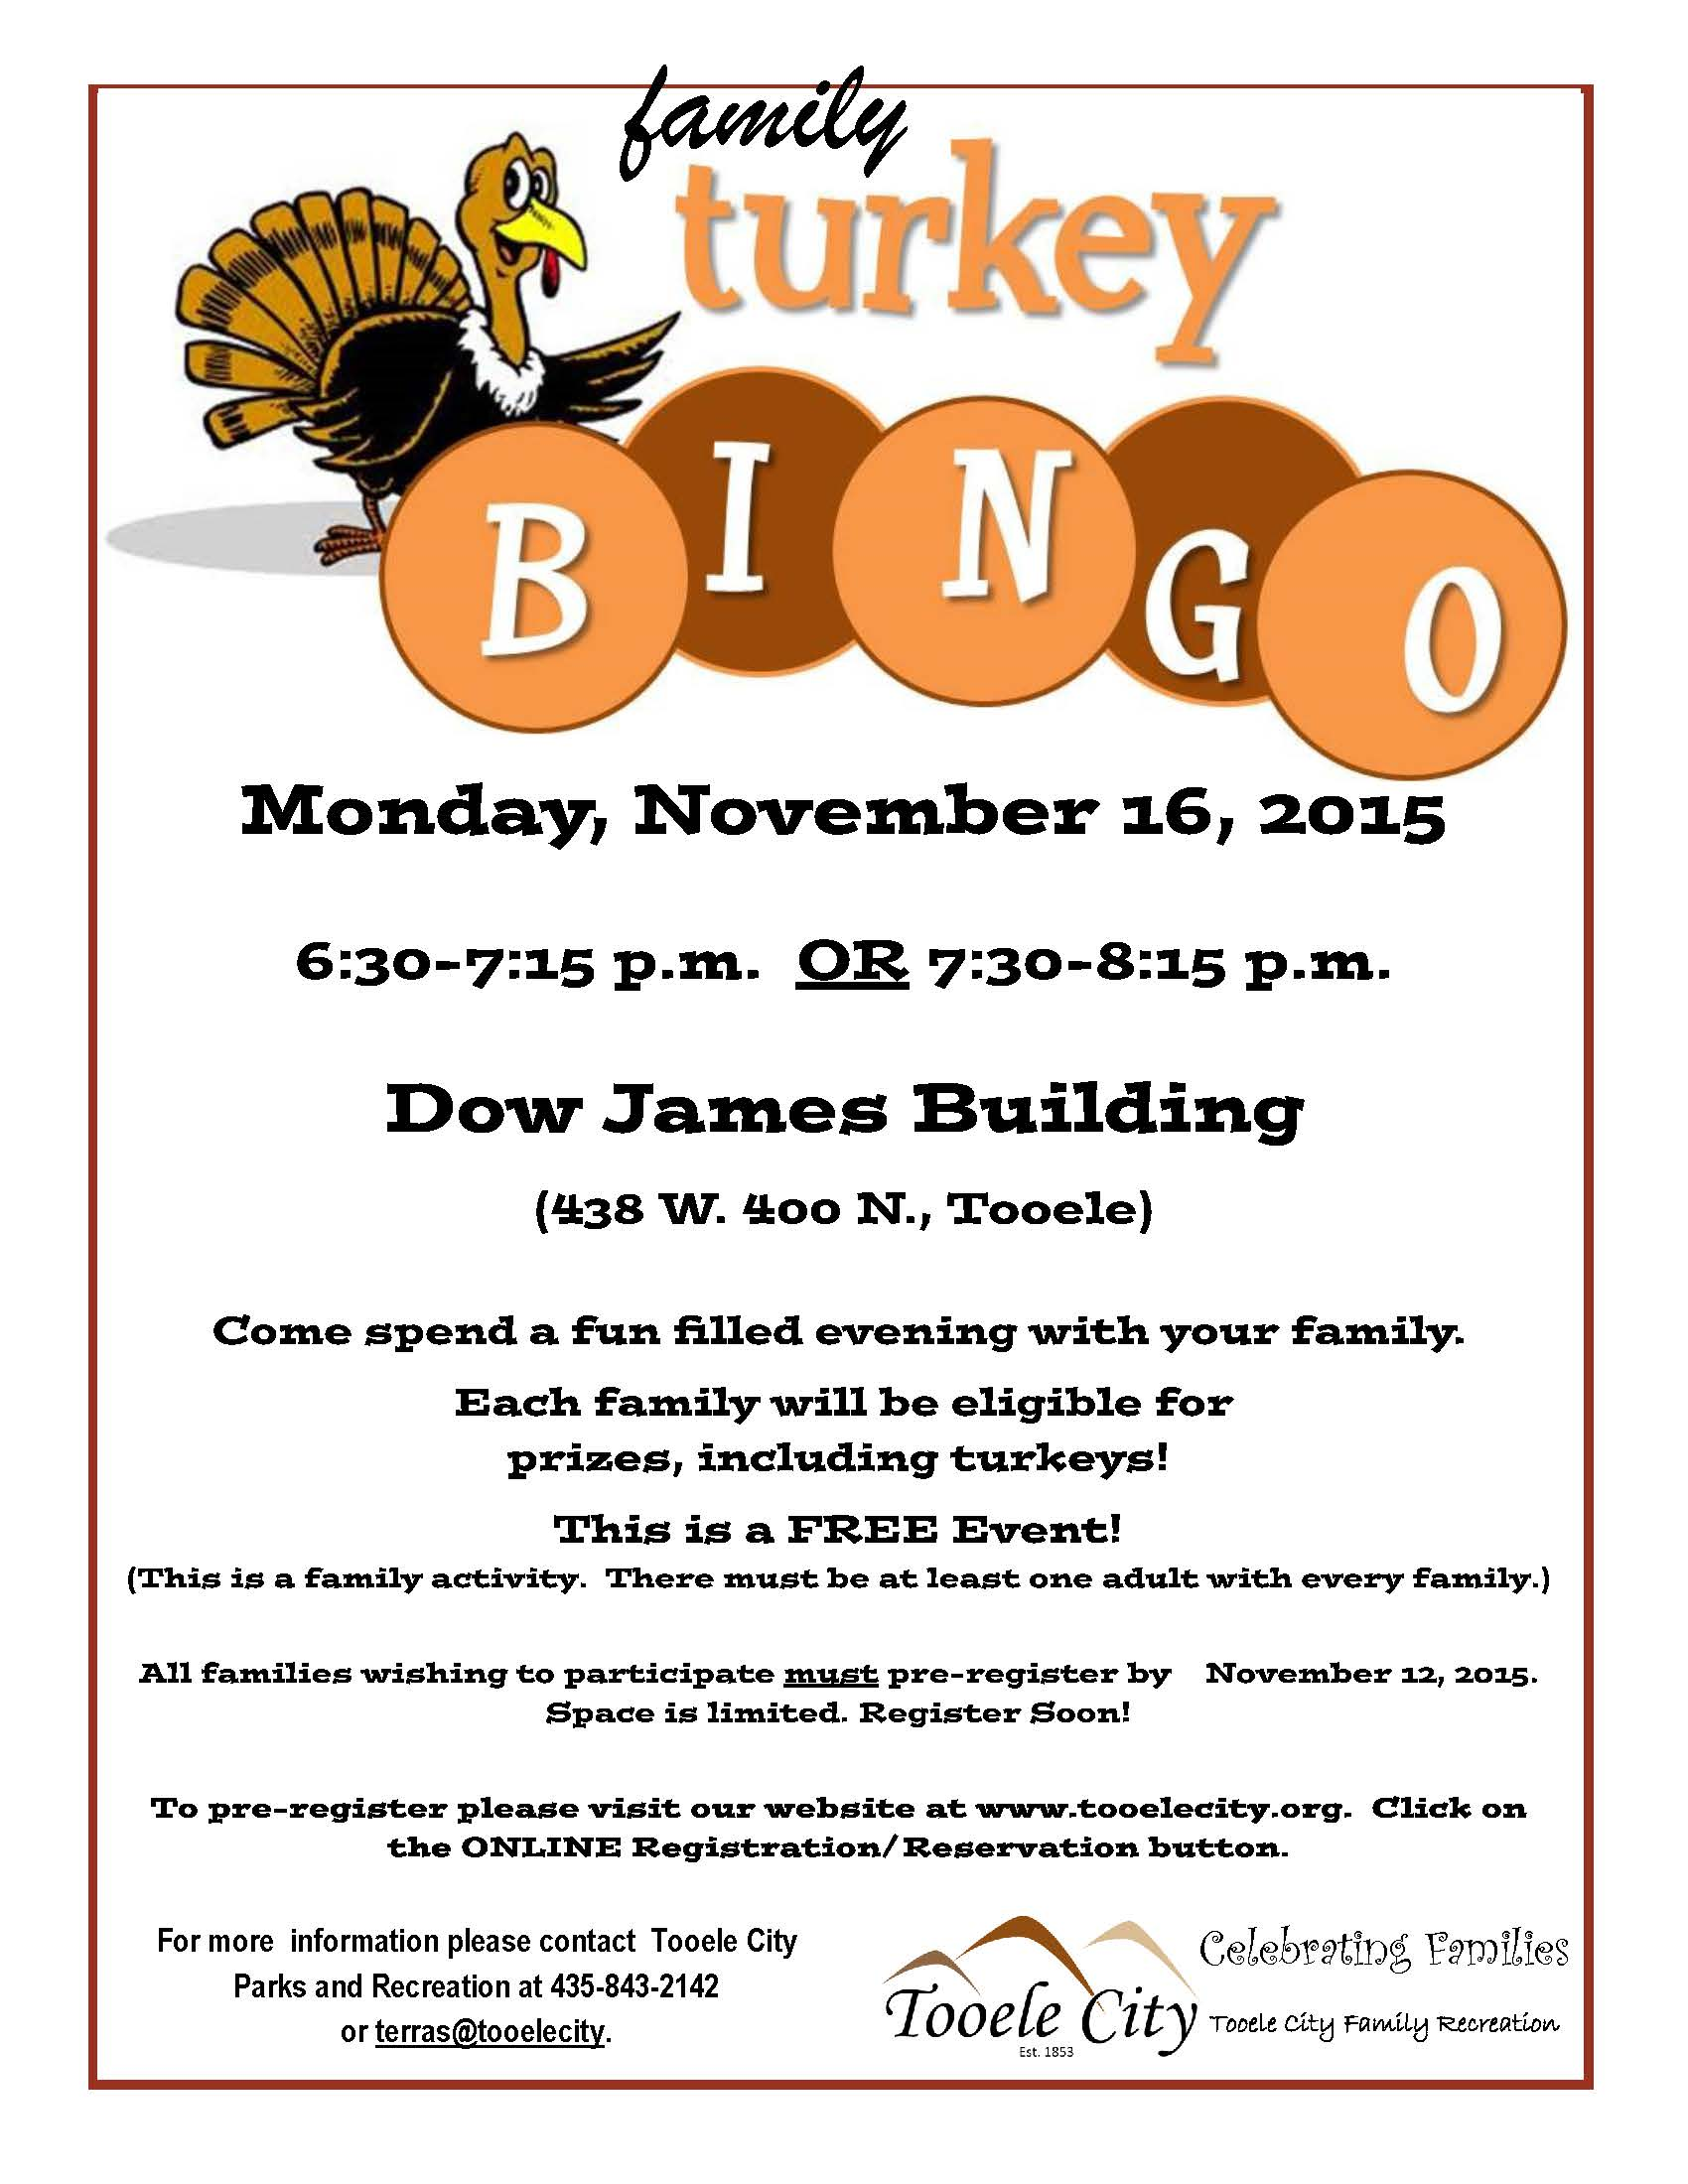 Turkey Bingo Family Activity November 2015